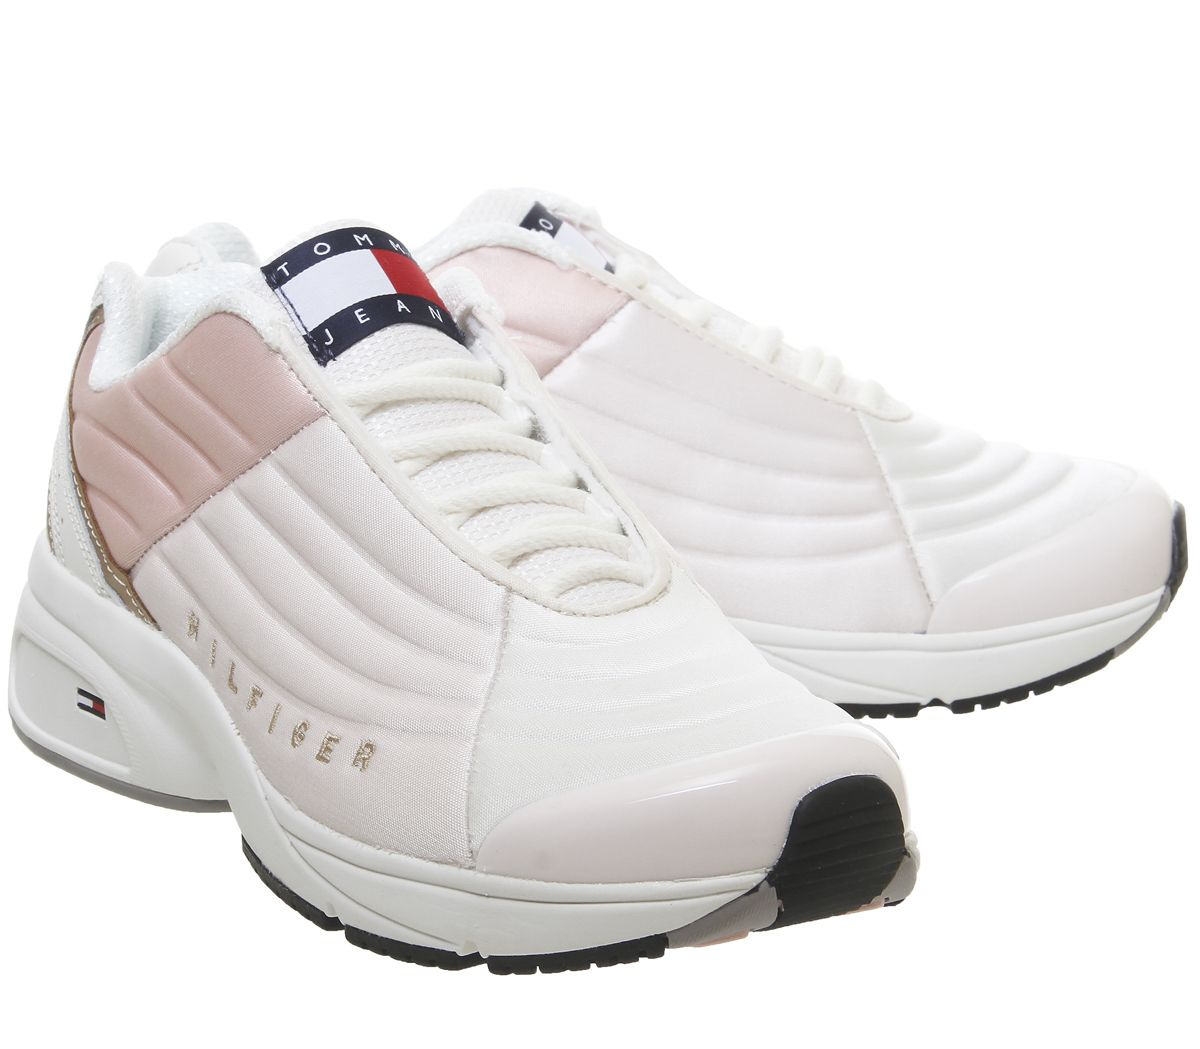 Womens Tommy Hilfiger Phil Trainers Delicacy F Trainers Shoes